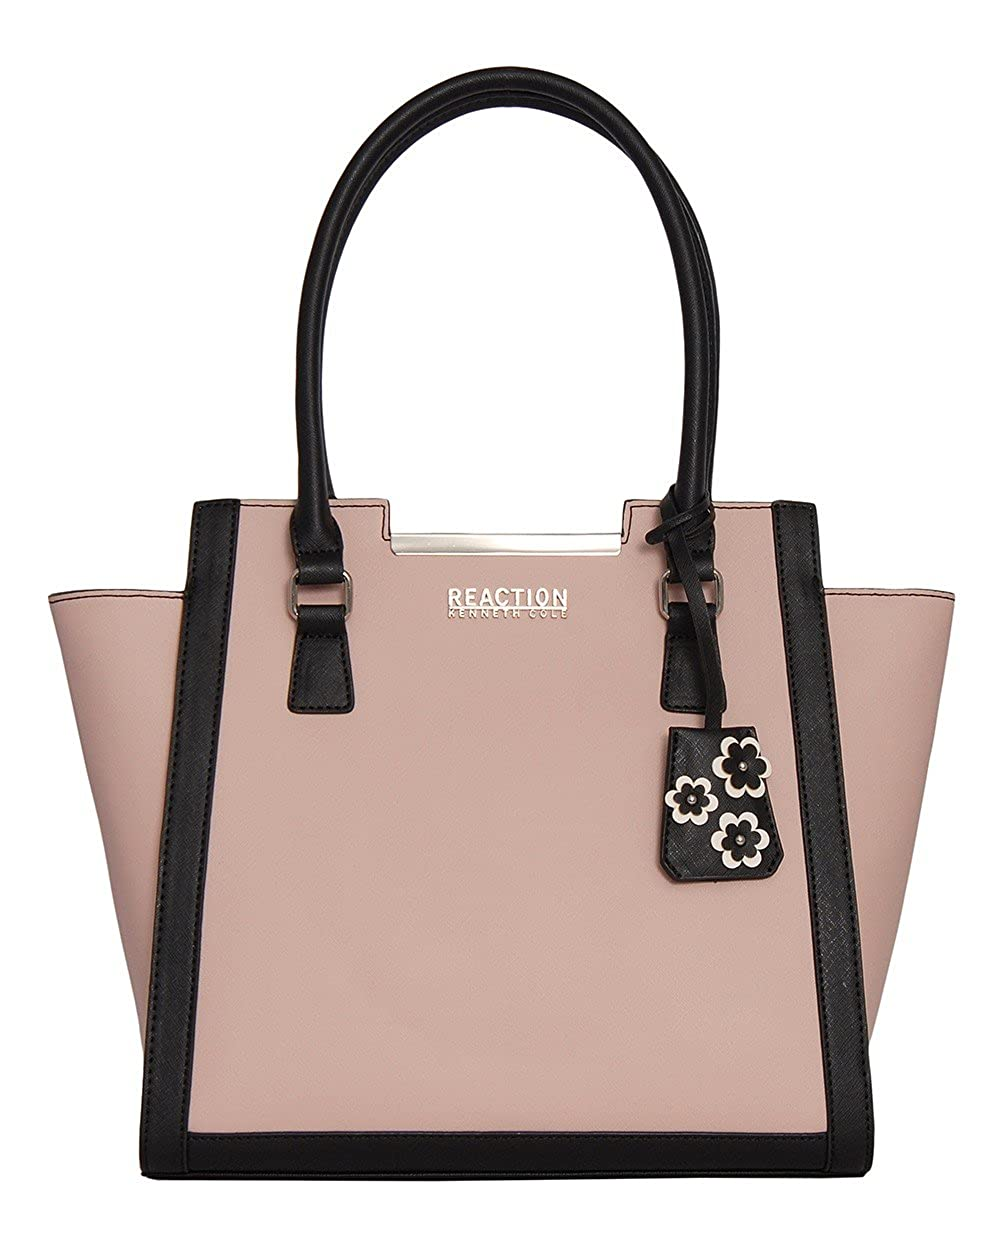 e414617c04da Kenneth cole reaction cheerleader womens tote shopper handbag jpg 1001x1251 Kenneth  cole shopper bag